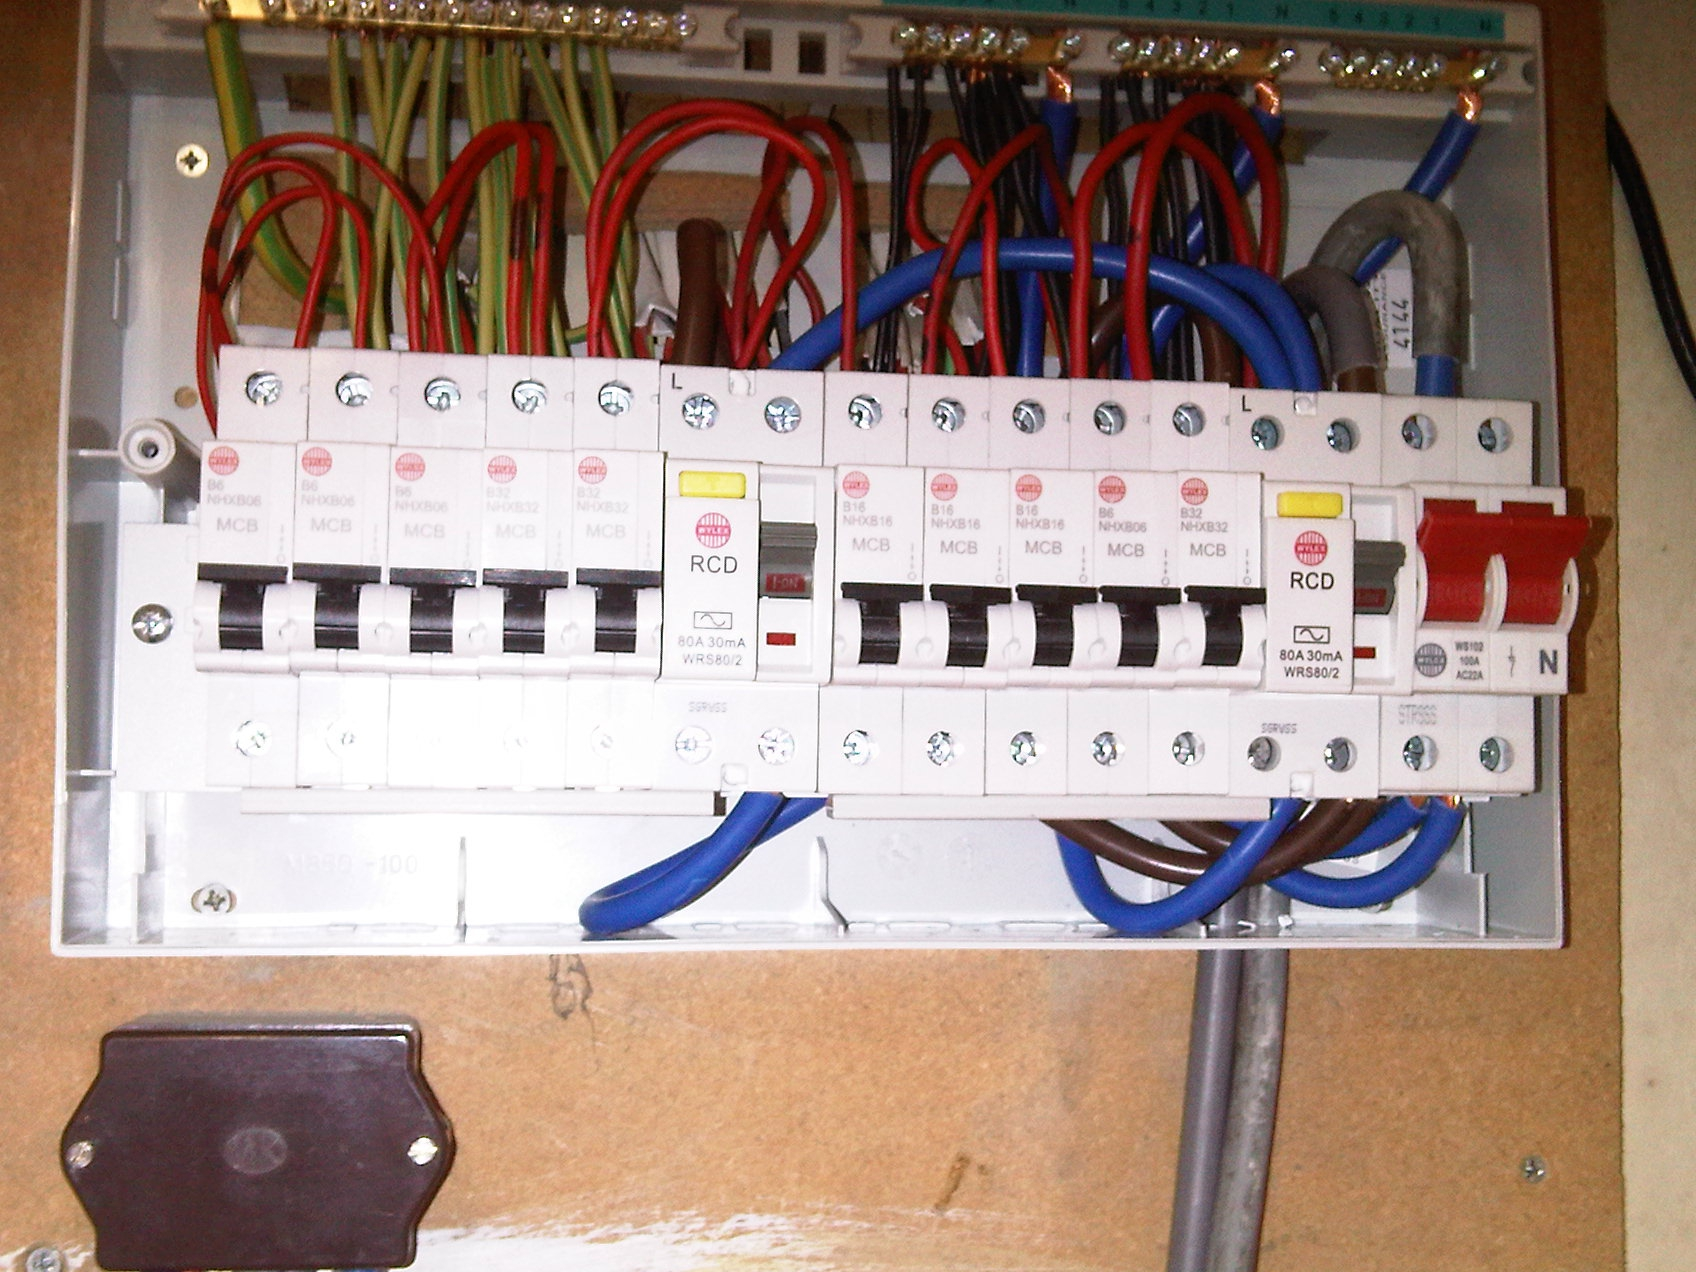 Fusebox 4 mk repair centre notices & news how to change fuse in fuse box at gsmx.co